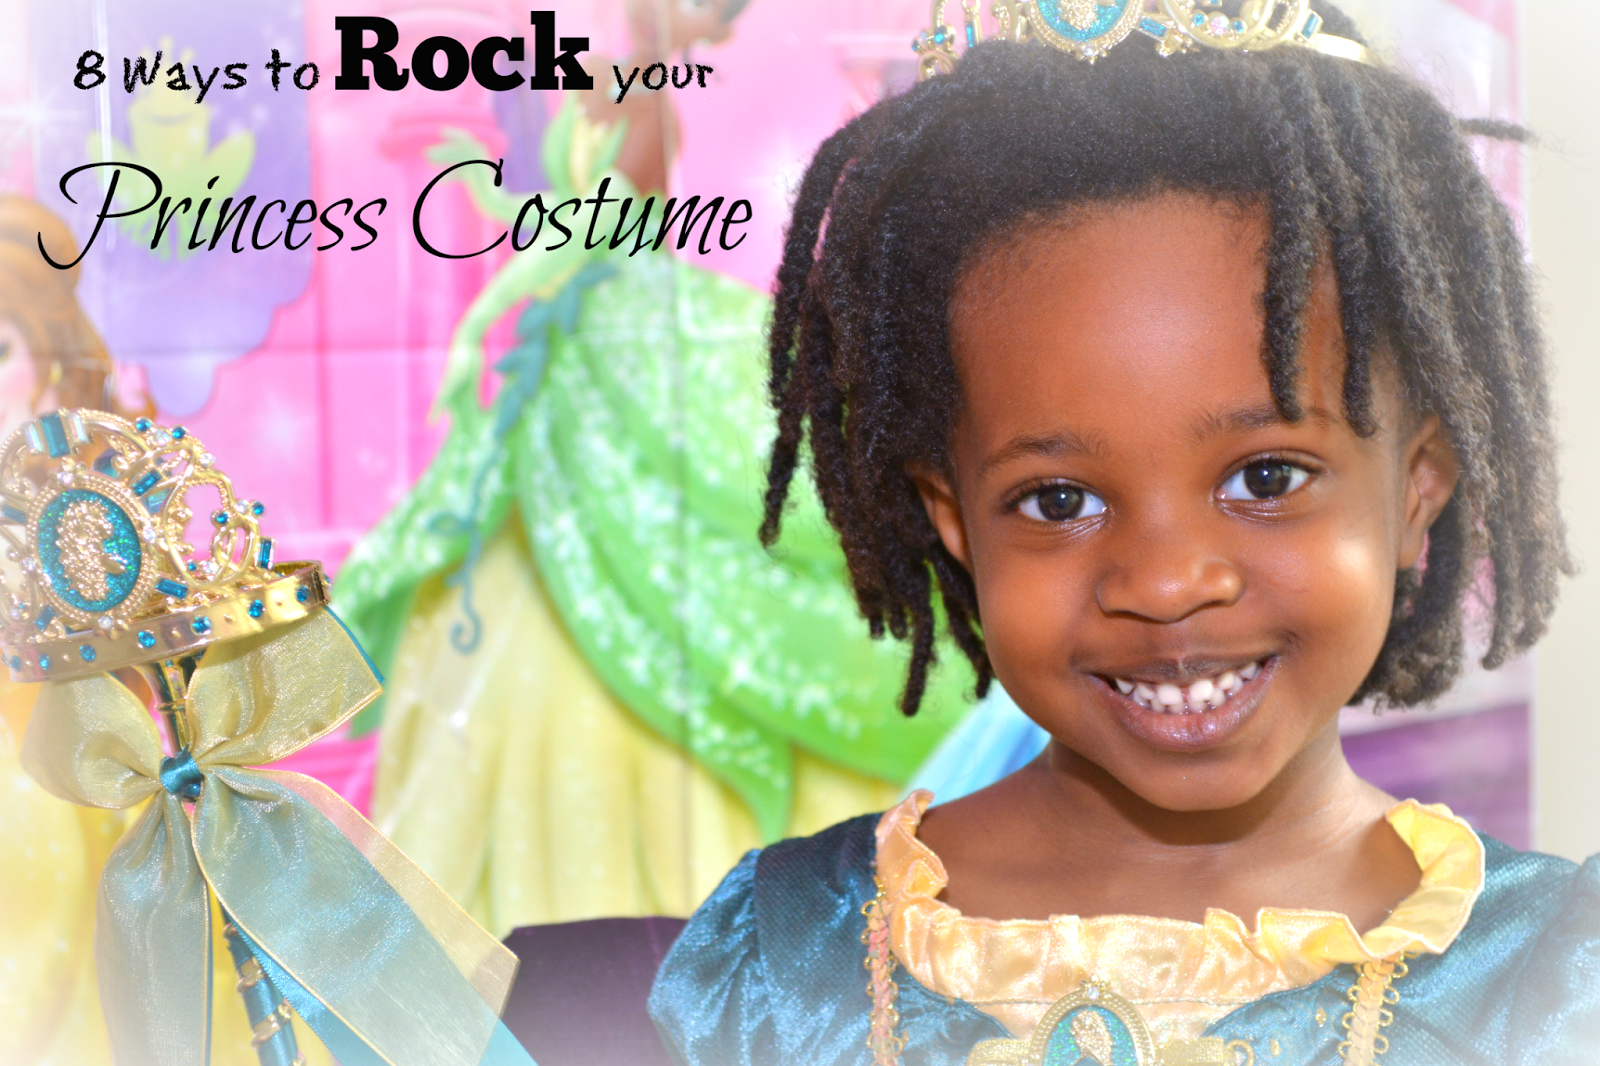 8 ways to rock princess costumes pinterest #DisneyBeauties #shop